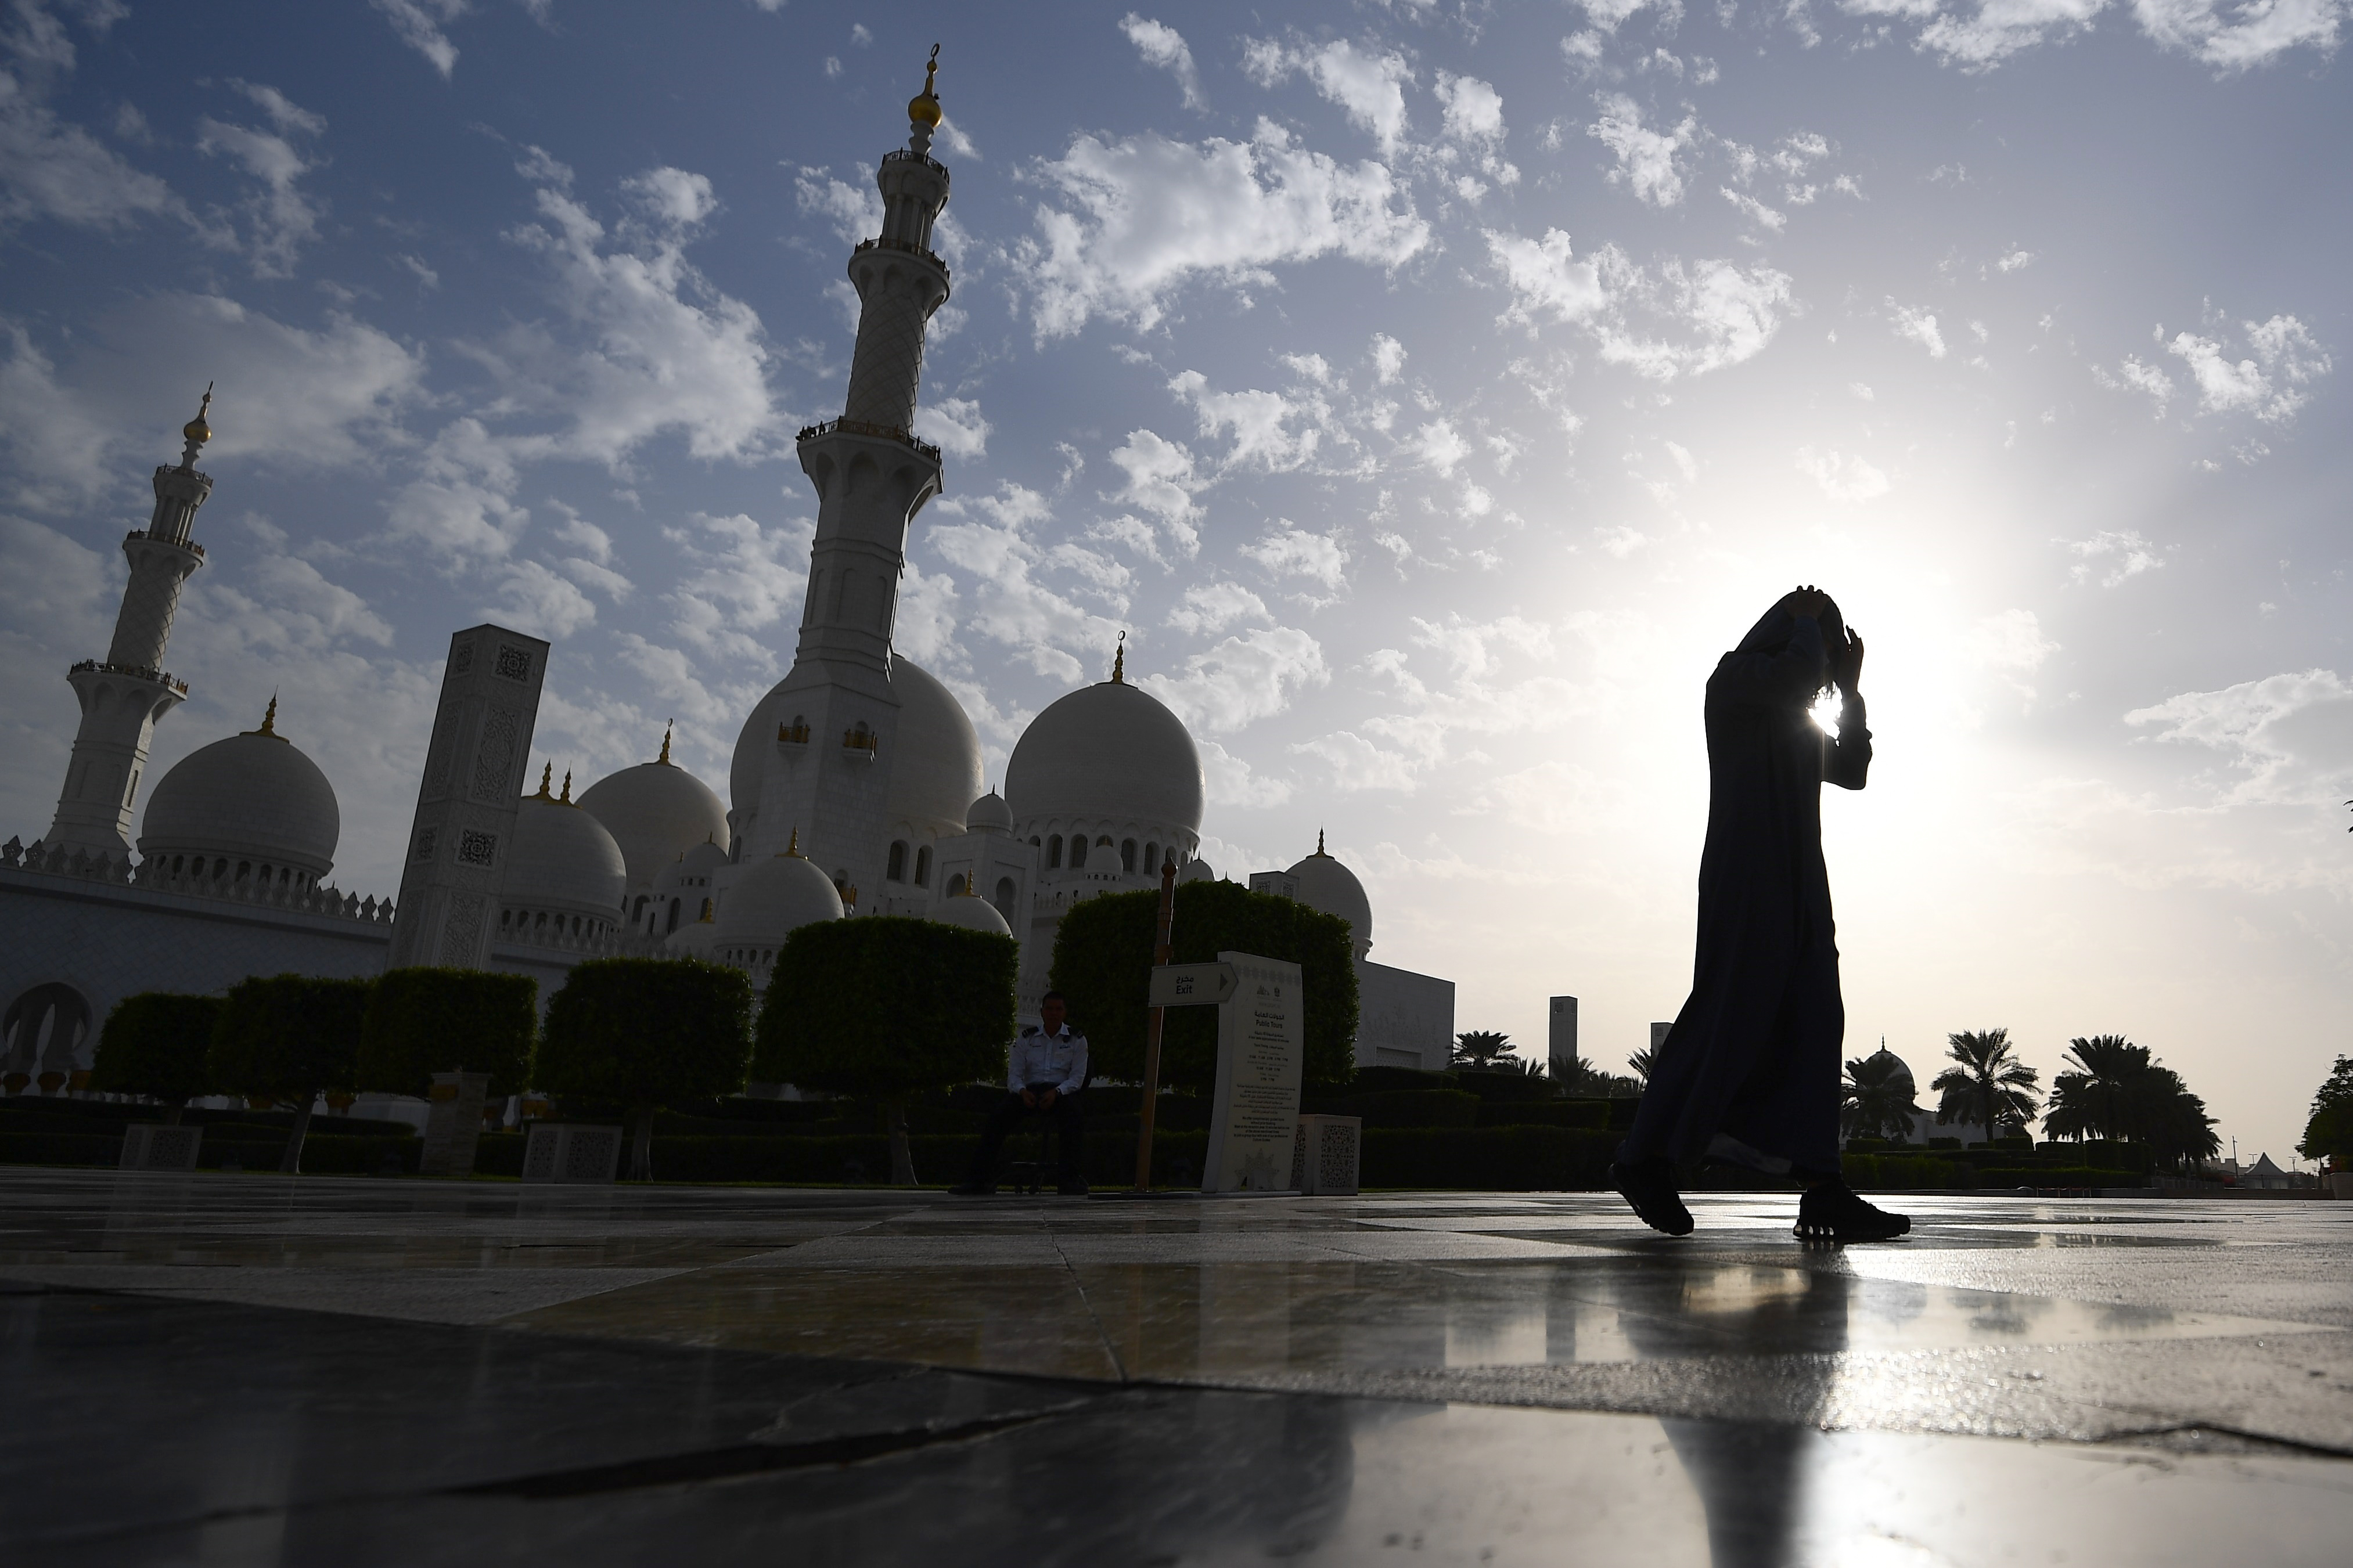 A picture taken on November 6, 2018 shows a visitor in front of the Sheikh Zayed Grand Mosque in the Emirati capital Abu Dhabi. (GIUSEPPE CACACE/AFP/Getty Images)